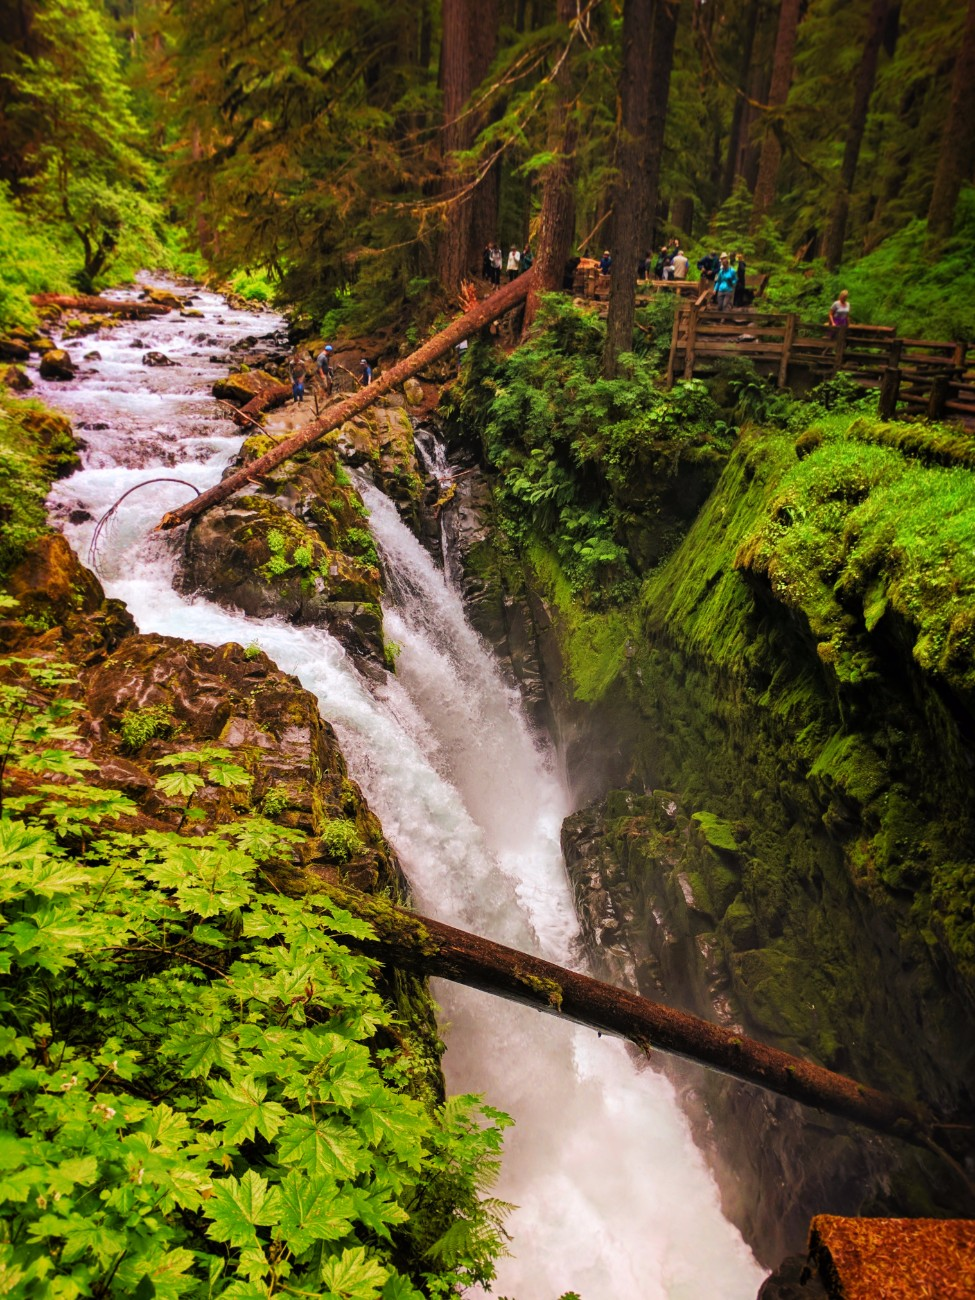 Mossy gorge and waterfalls in Rainforest Sol Duc Falls Olympic National Park 2